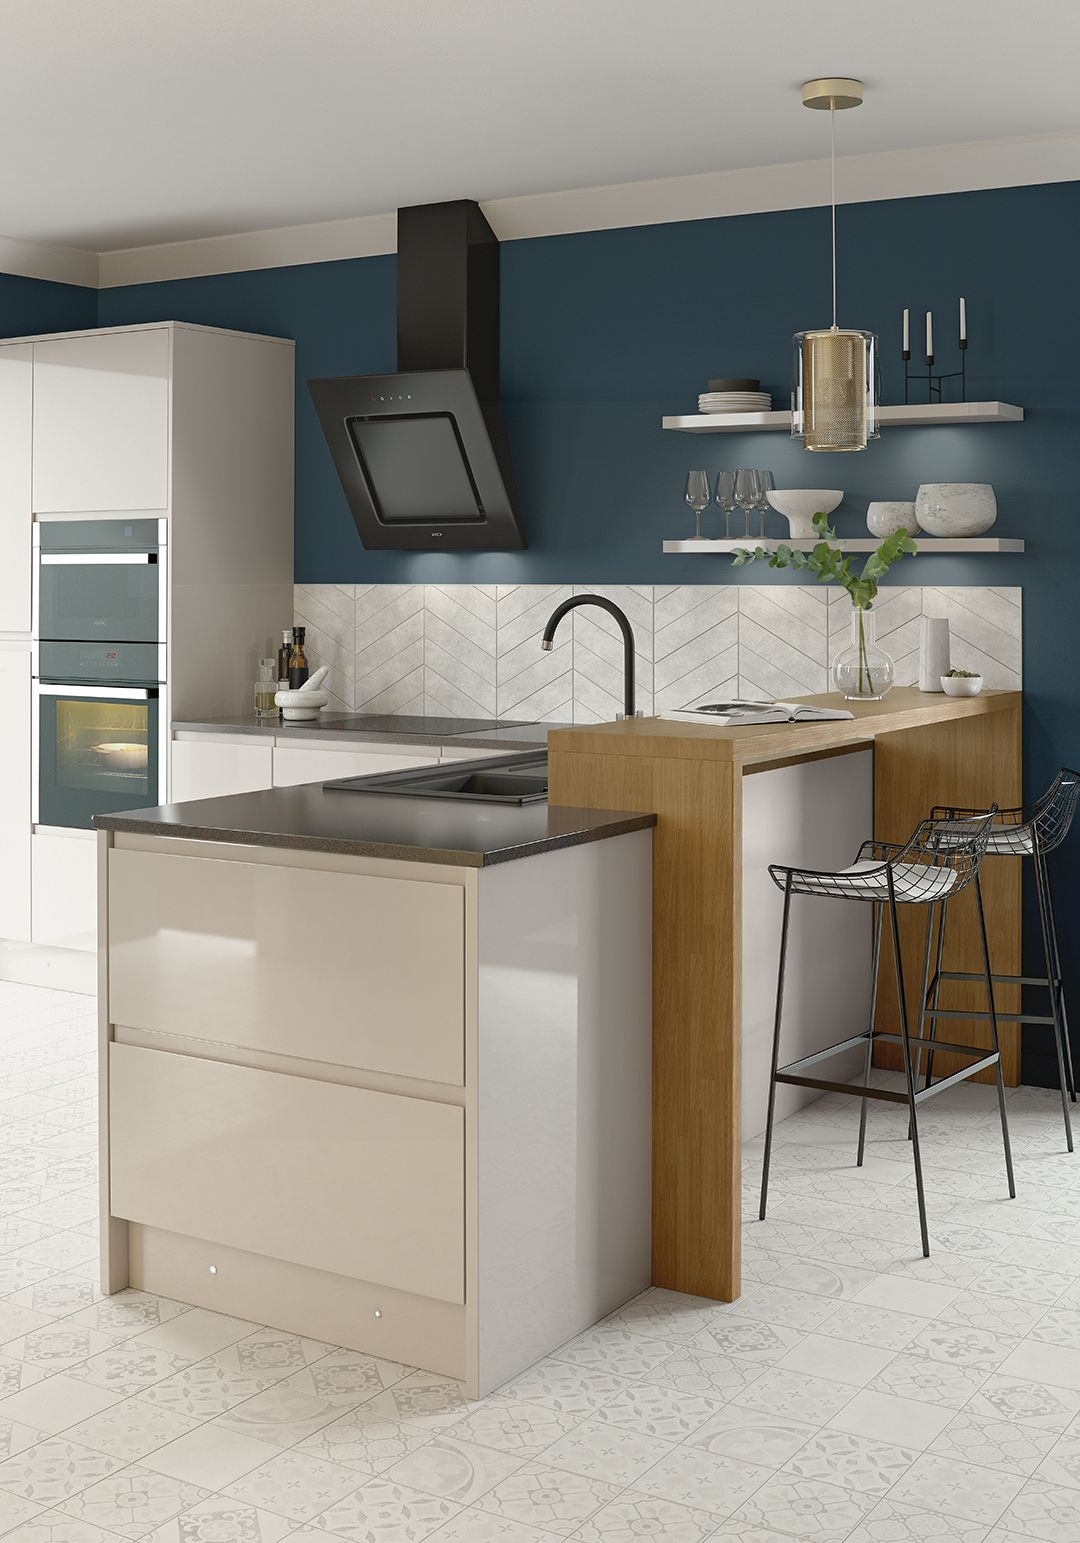 The Miller Kit Kaboodle Kitchen Range From Homebase Is Clean And